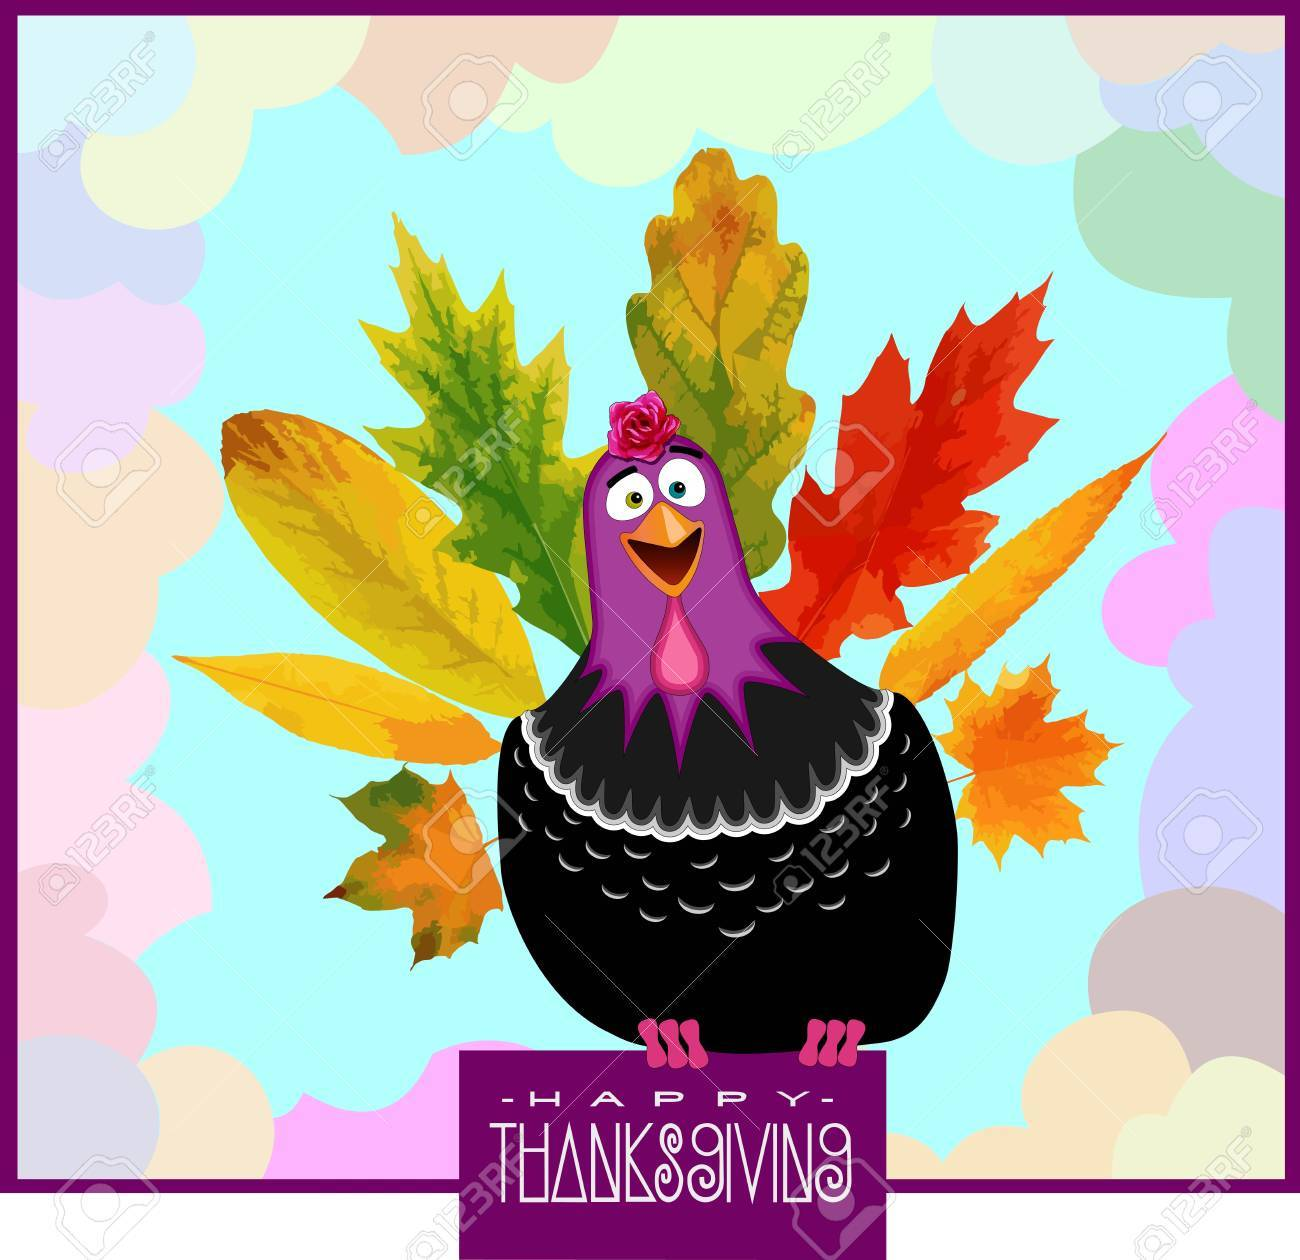 Thanksgiving Day Poster with Funny Turkey and falling Leafs - 47377027